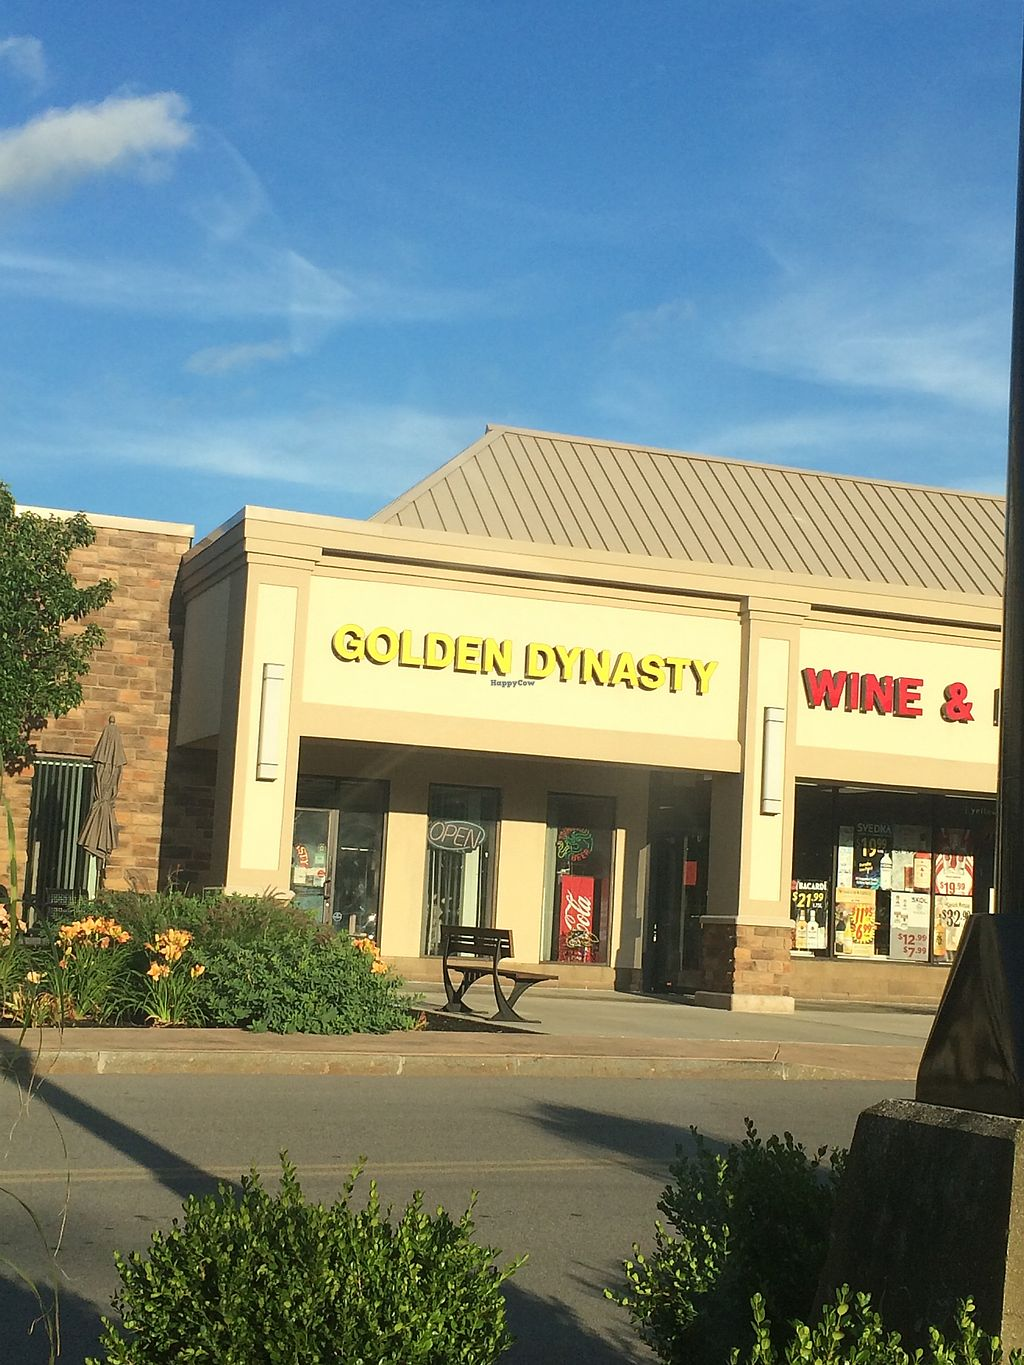 """Photo of Golden Dynasty   by <a href=""""/members/profile/fruitiJulie"""">fruitiJulie</a> <br/>outside Clinton plaza  <br/> July 25, 2017  - <a href='/contact/abuse/image/96237/284791'>Report</a>"""